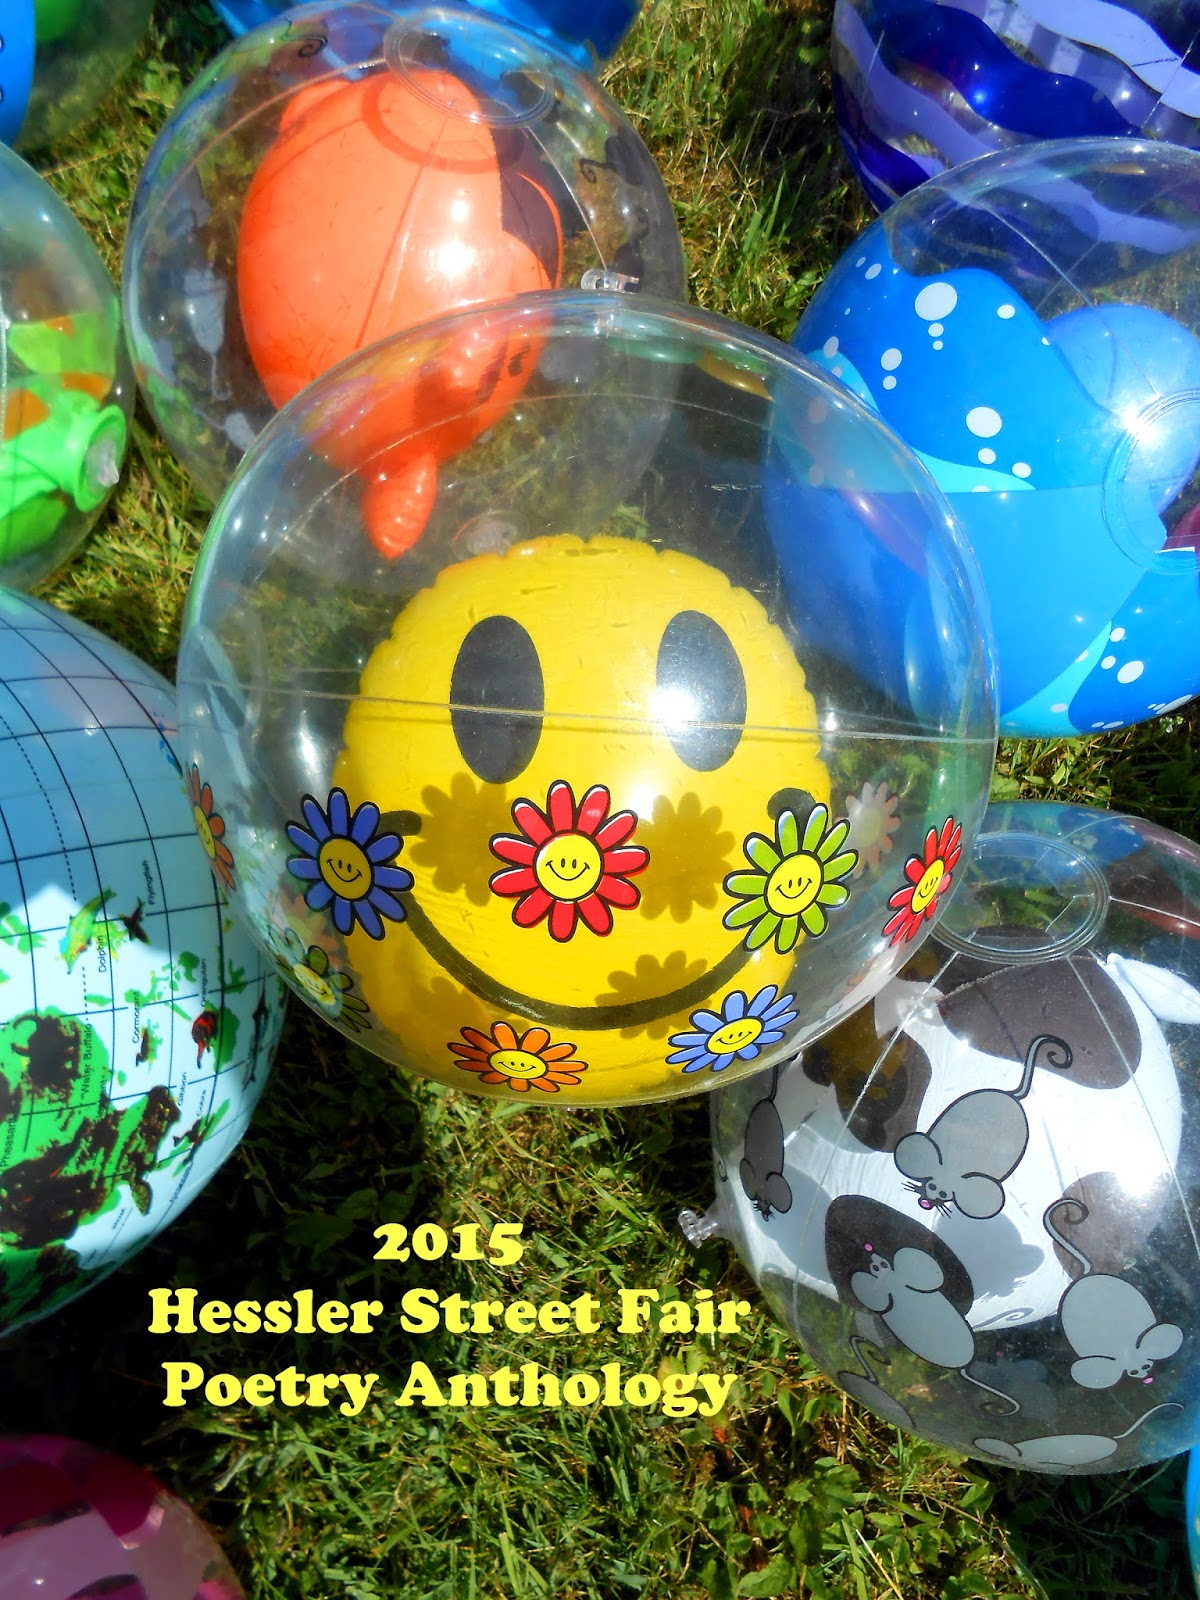 cover of Hessler Street Fair Poetry Anthology 2015